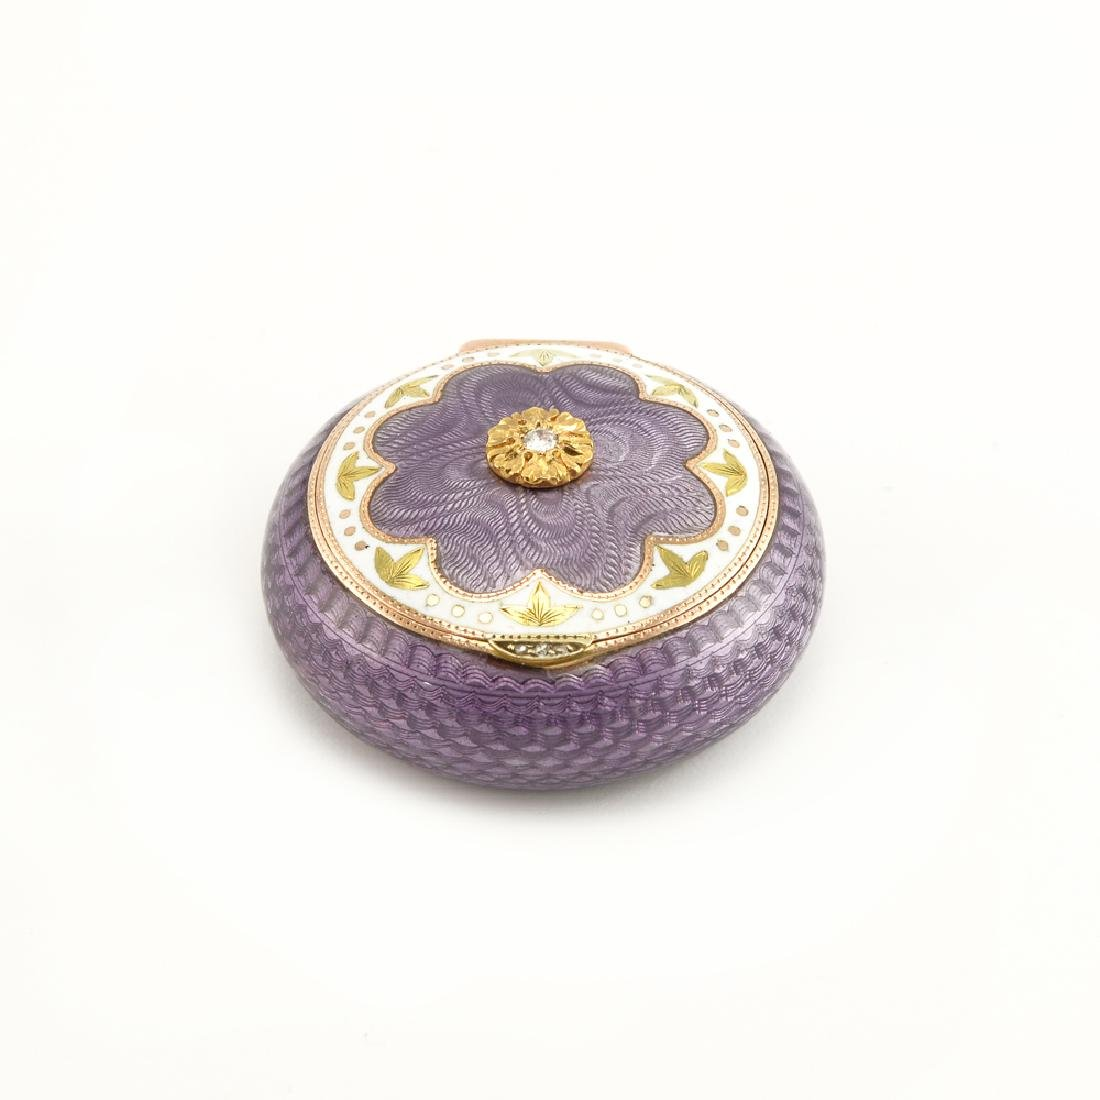 Russian Britzen Jewelled Gold and Enamel Pillbox